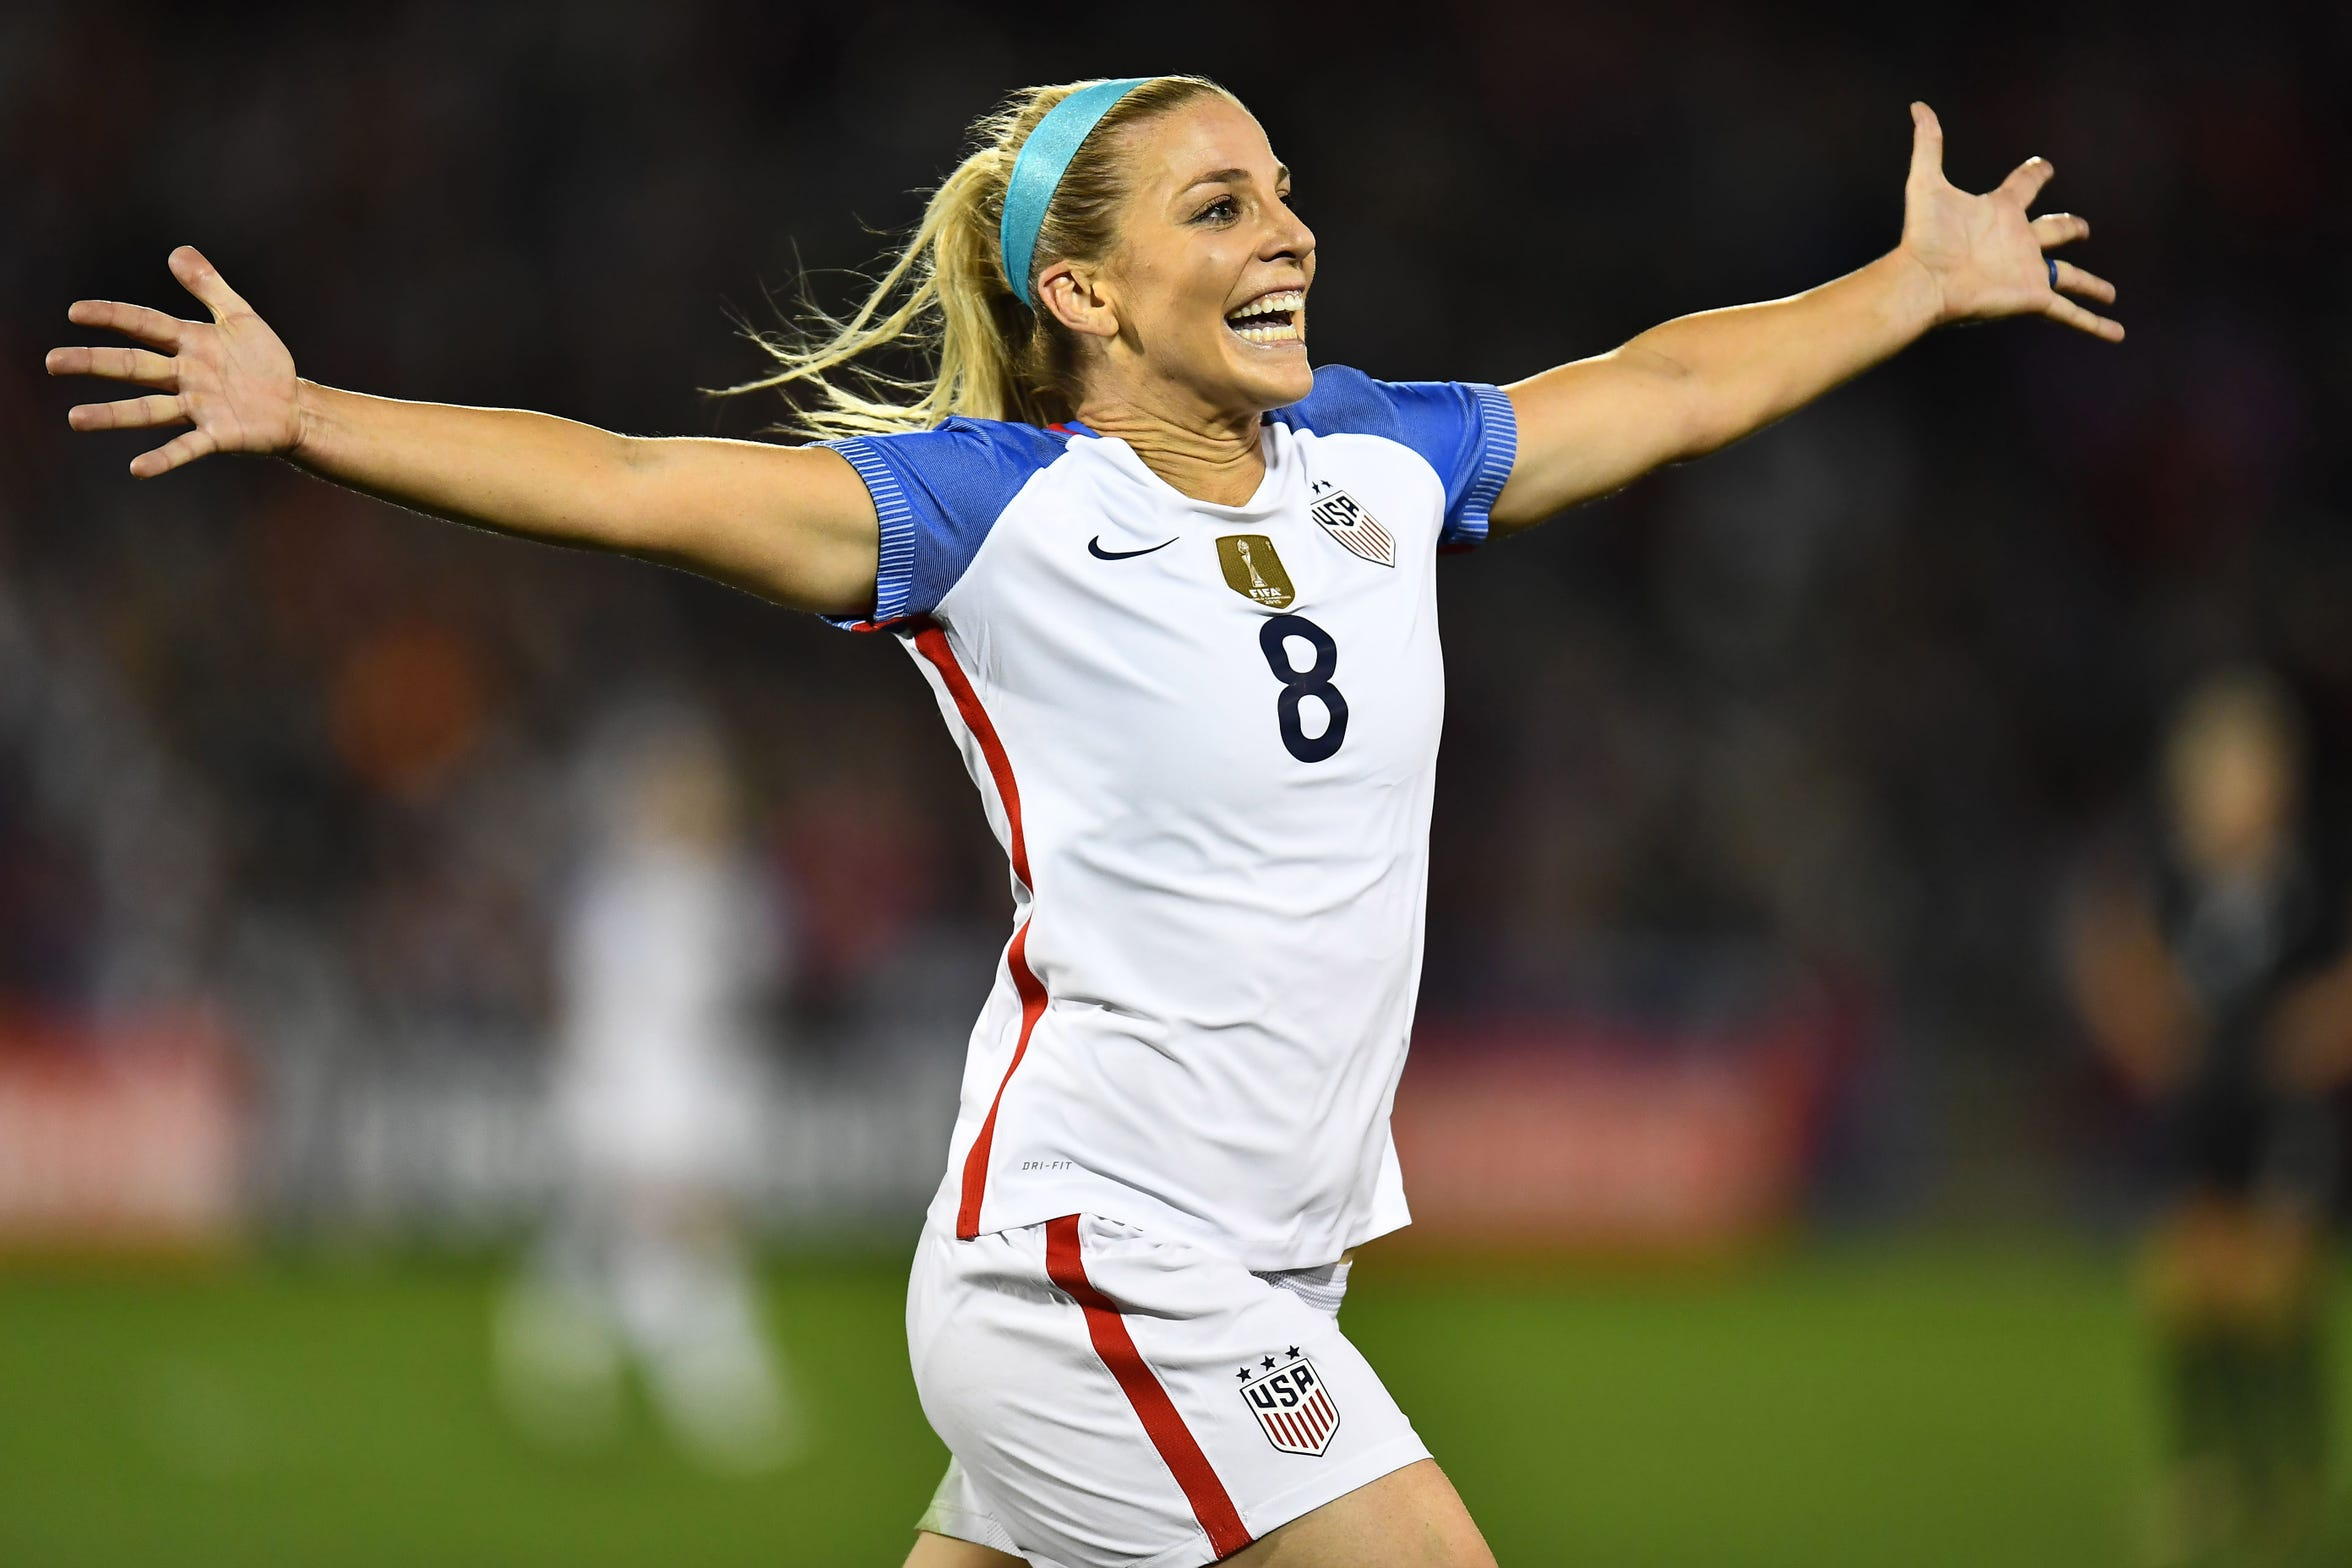 In 2017, Julie Ertz was asked to switch to midfielder – and never looked back.